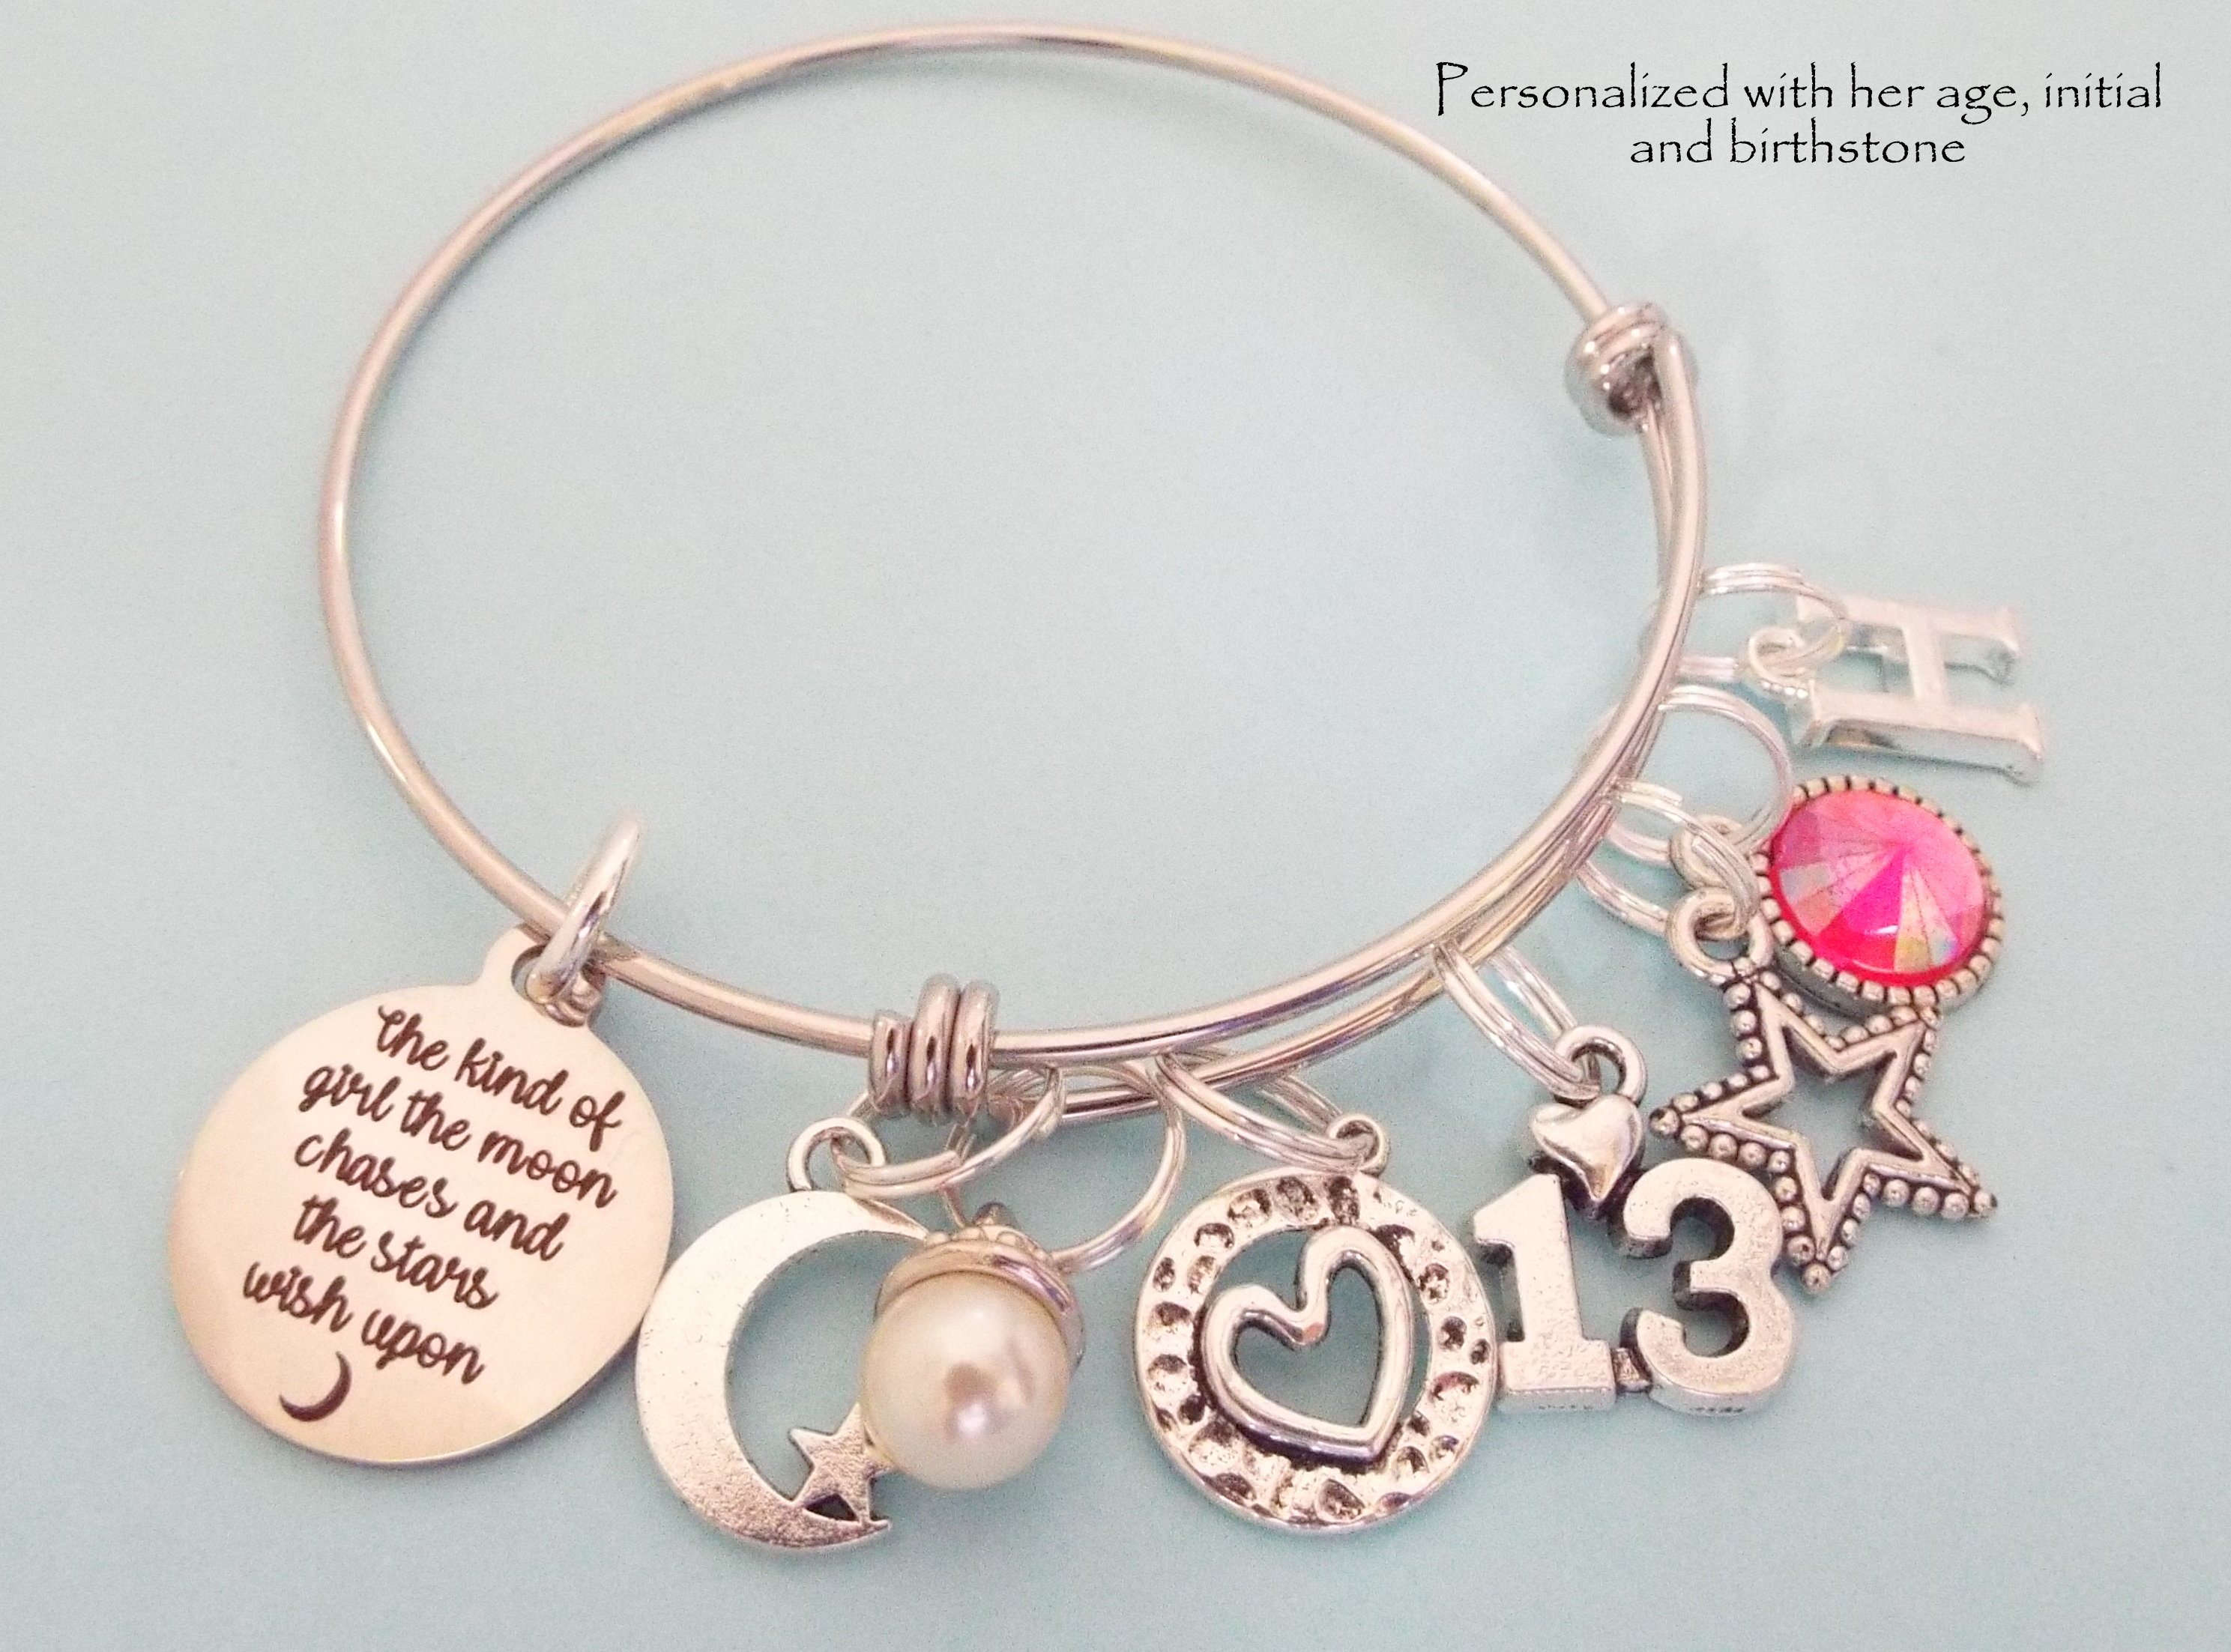 13 Year Old Girl Birthday Gift Daughter 13th Birthstone